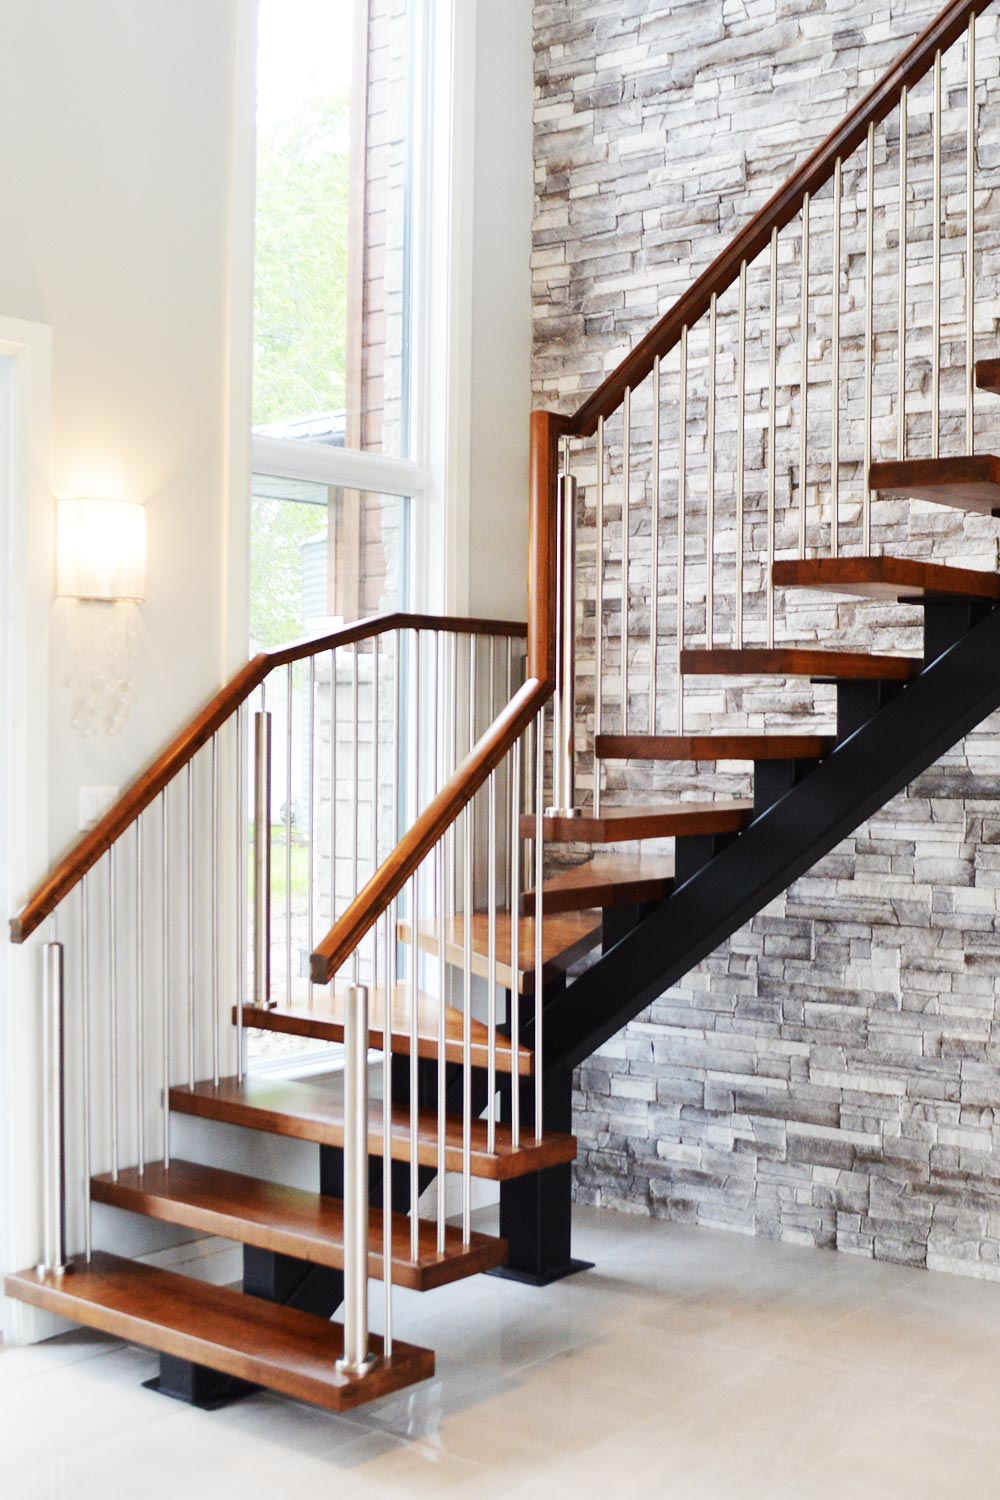 Custom stairs and railings for home builders, designers and homeowners.